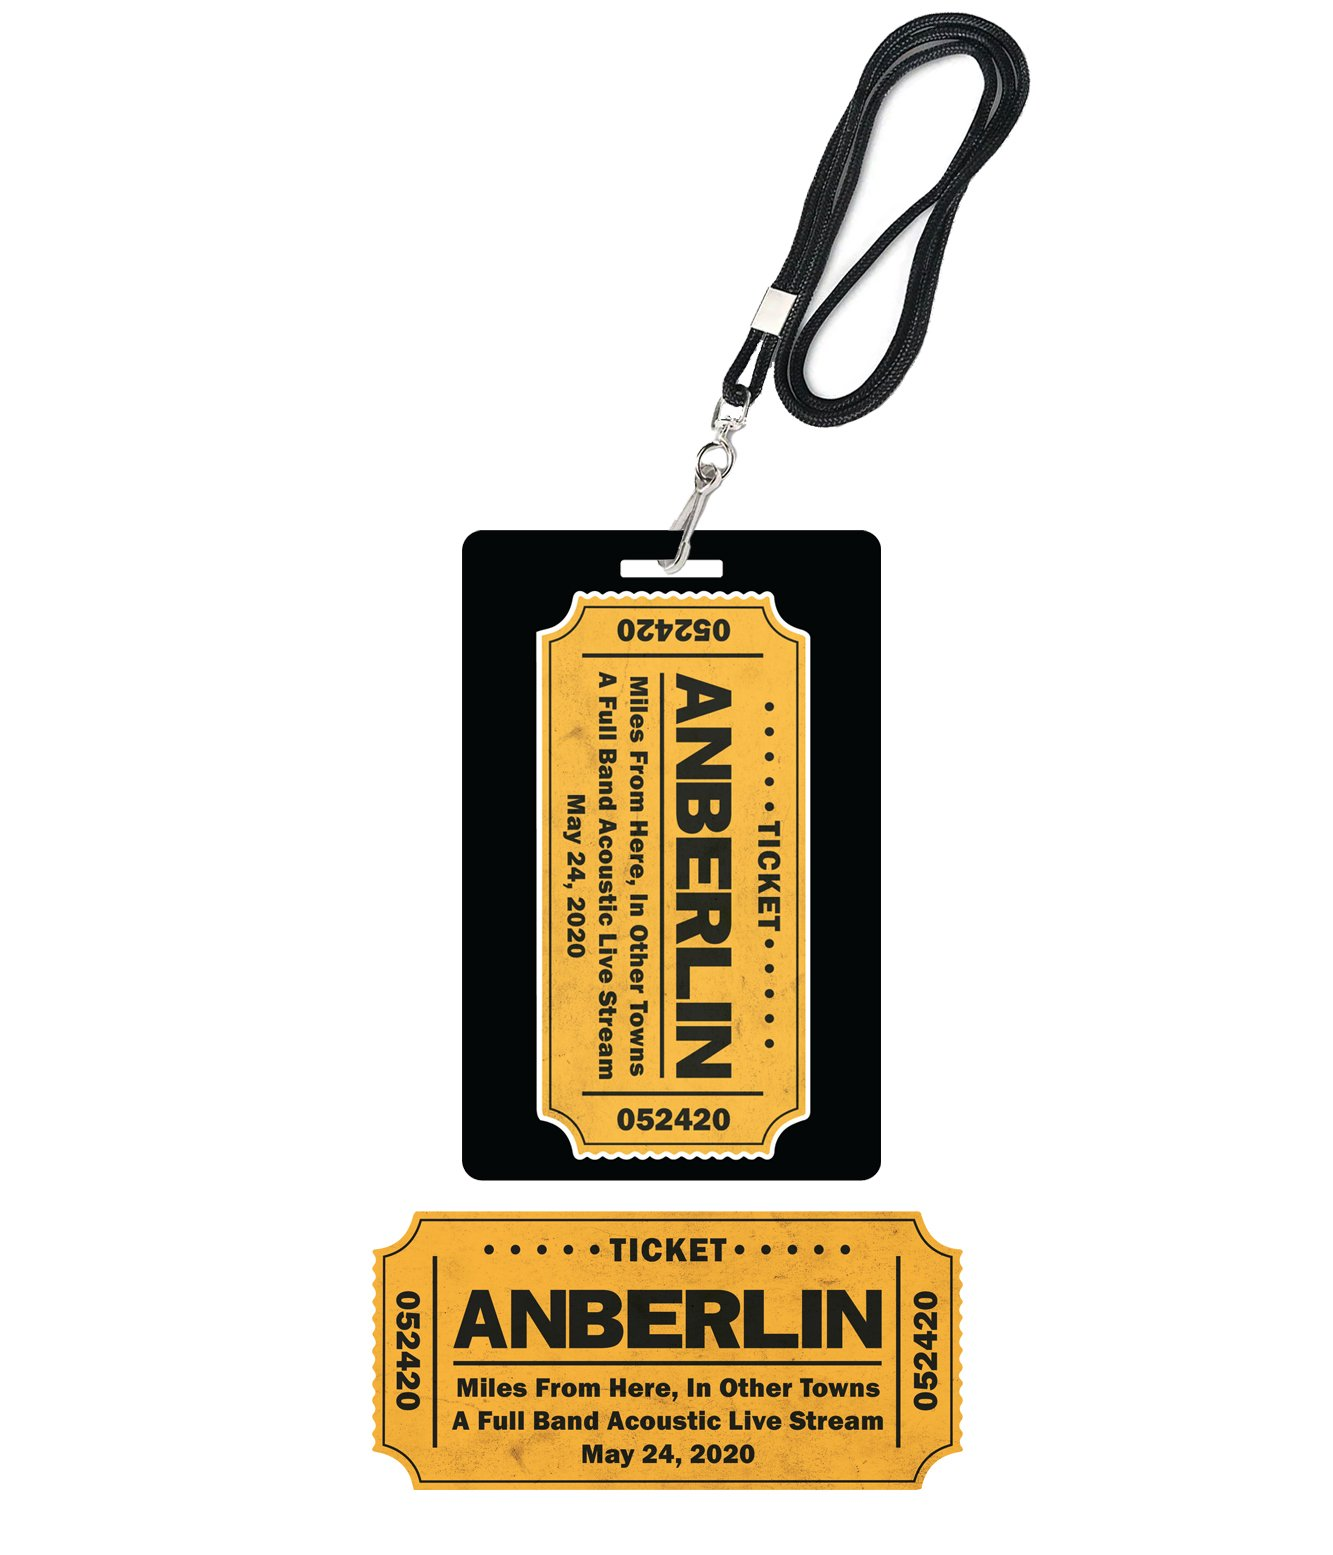 Anberlin Miles From Here In Other Towns - Live Stream Bundle #2